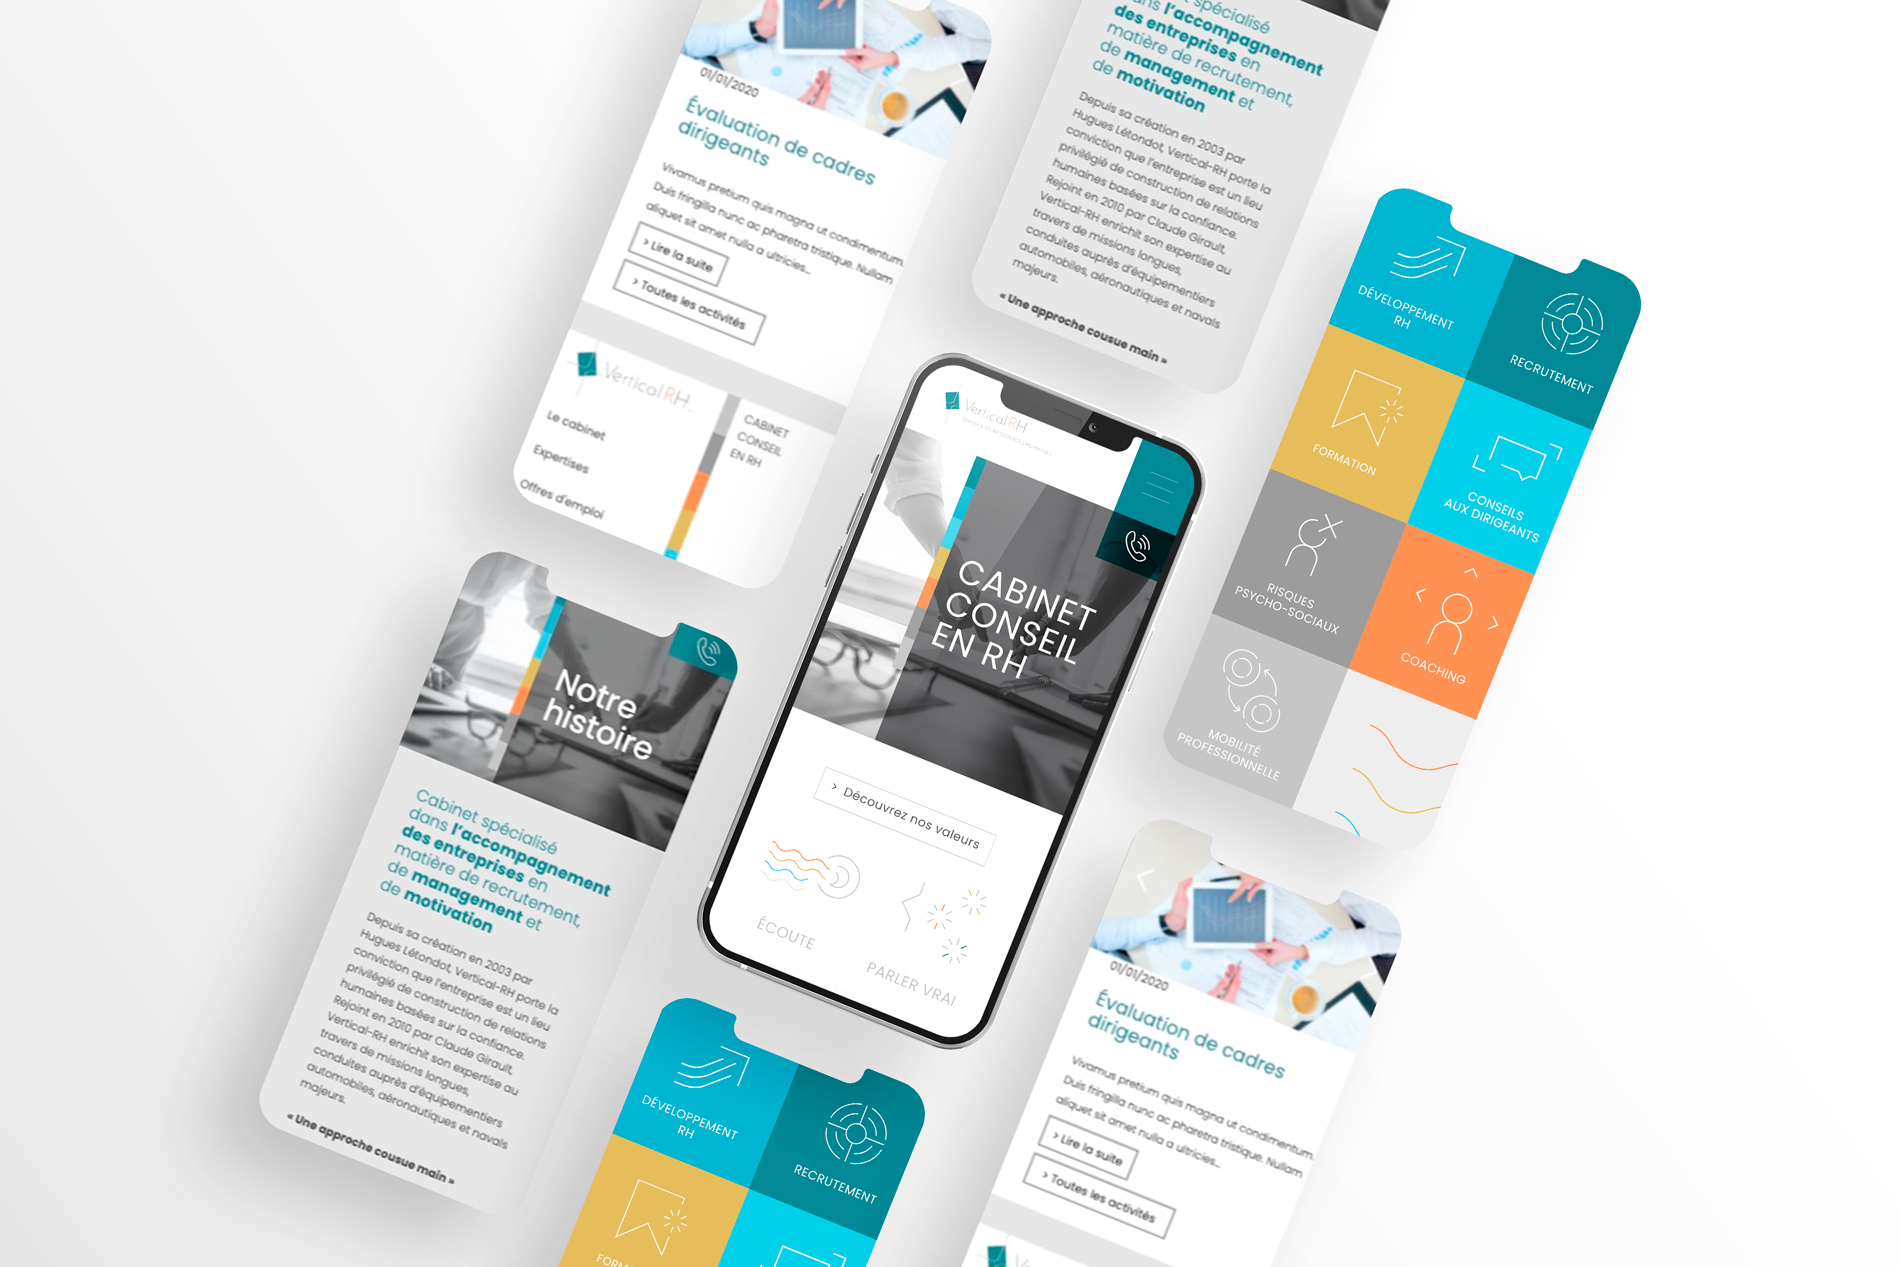 Mobile first Vertical RH